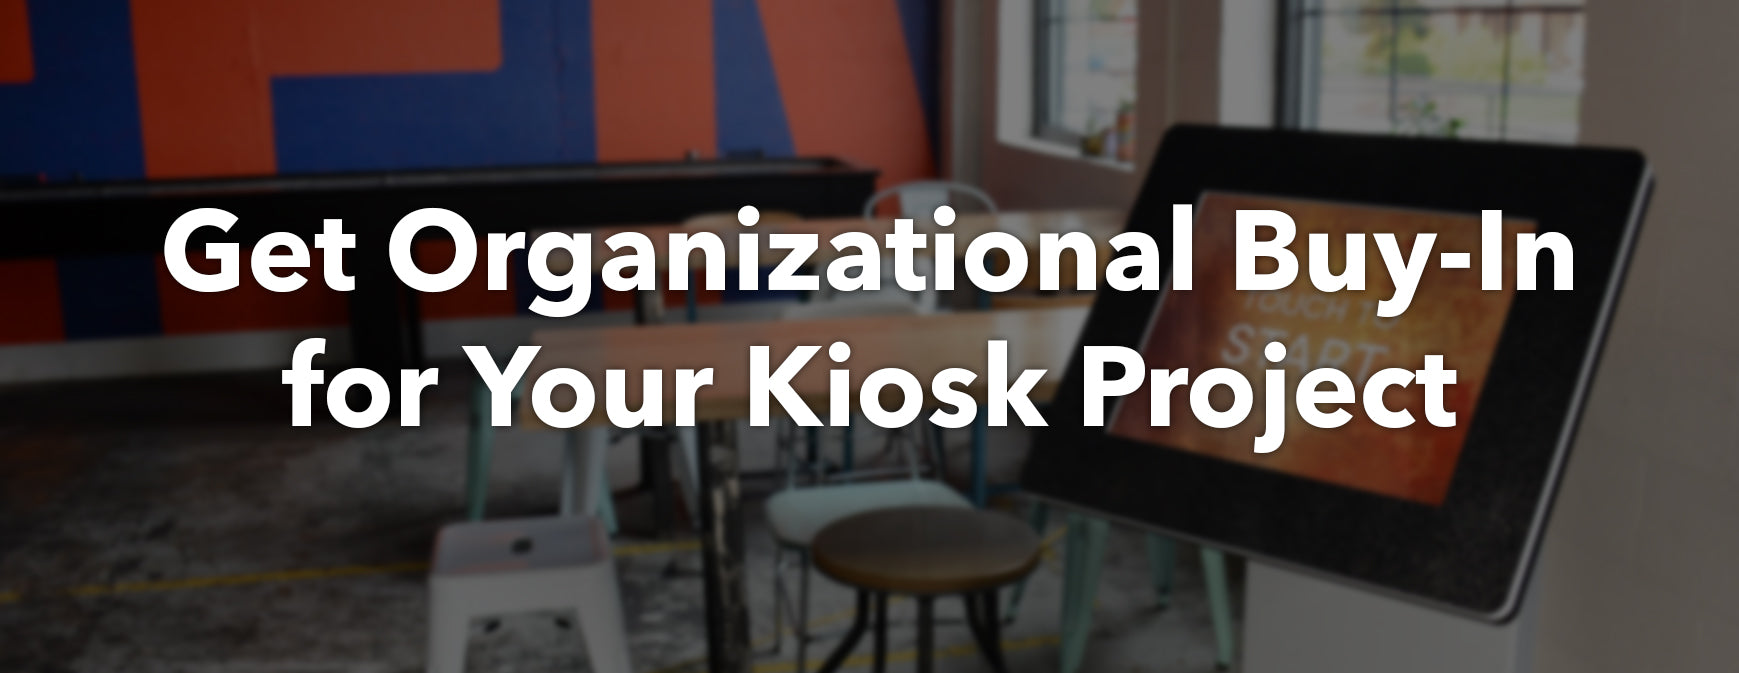 Get organizational buy-in for your kiosk project.